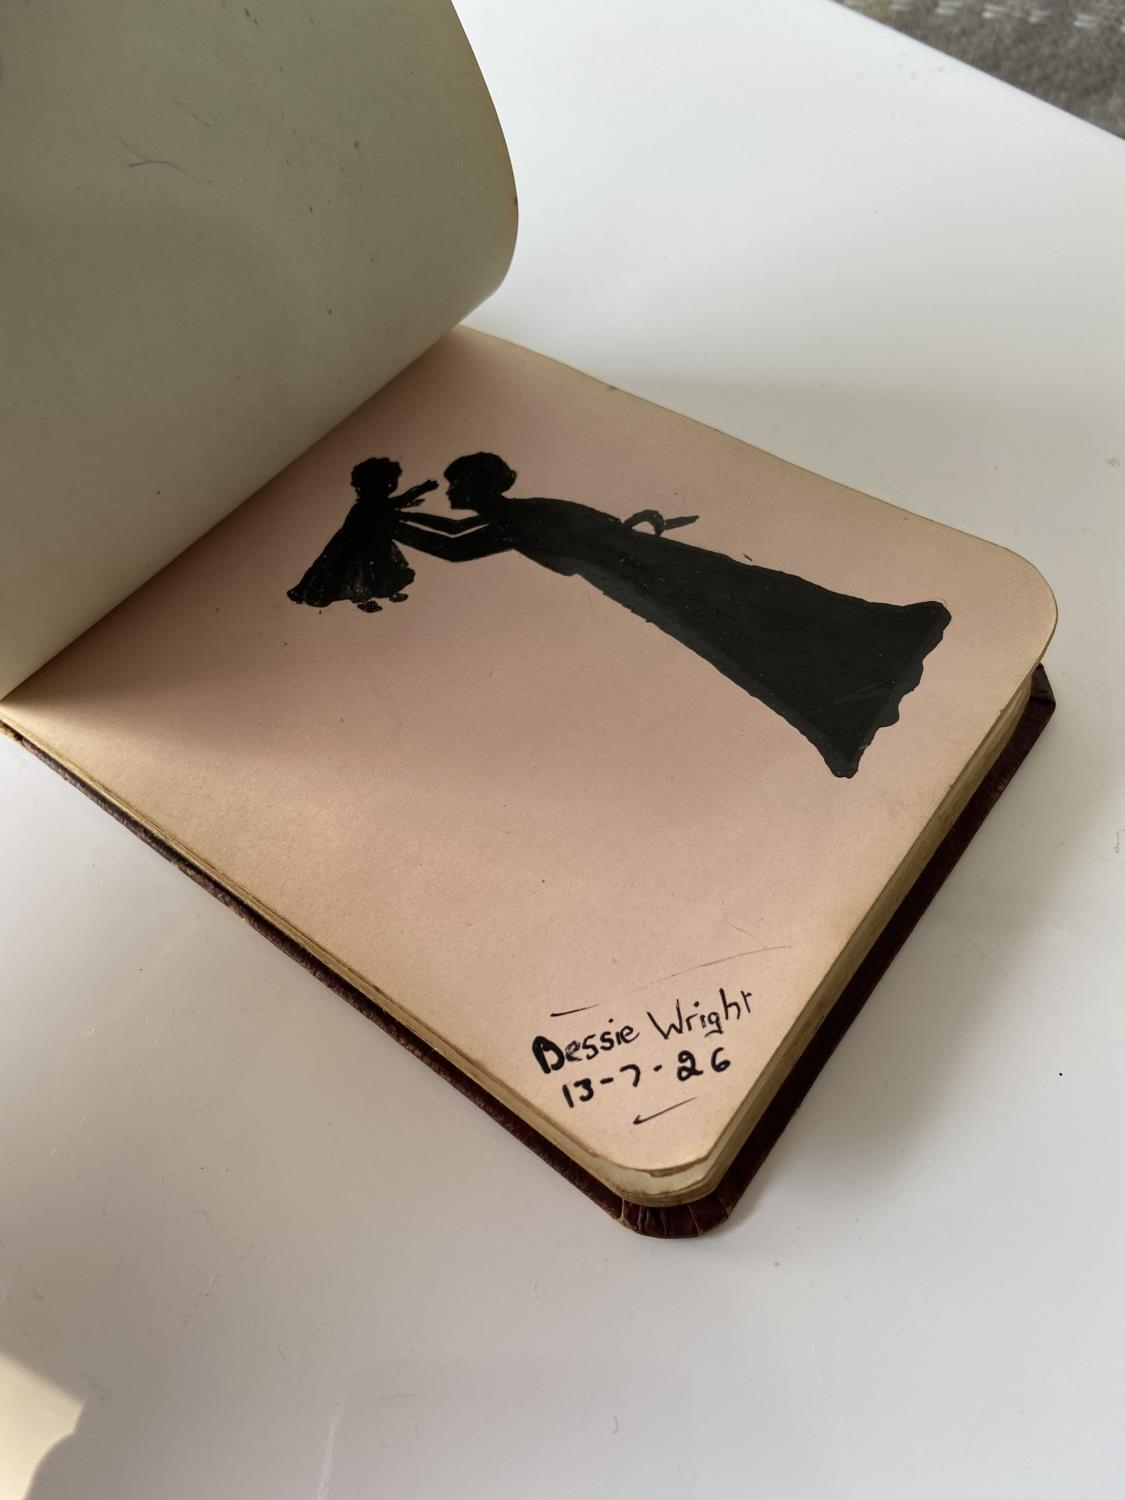 An old autograph album containing various poems, sayings & doodles - Image 14 of 18